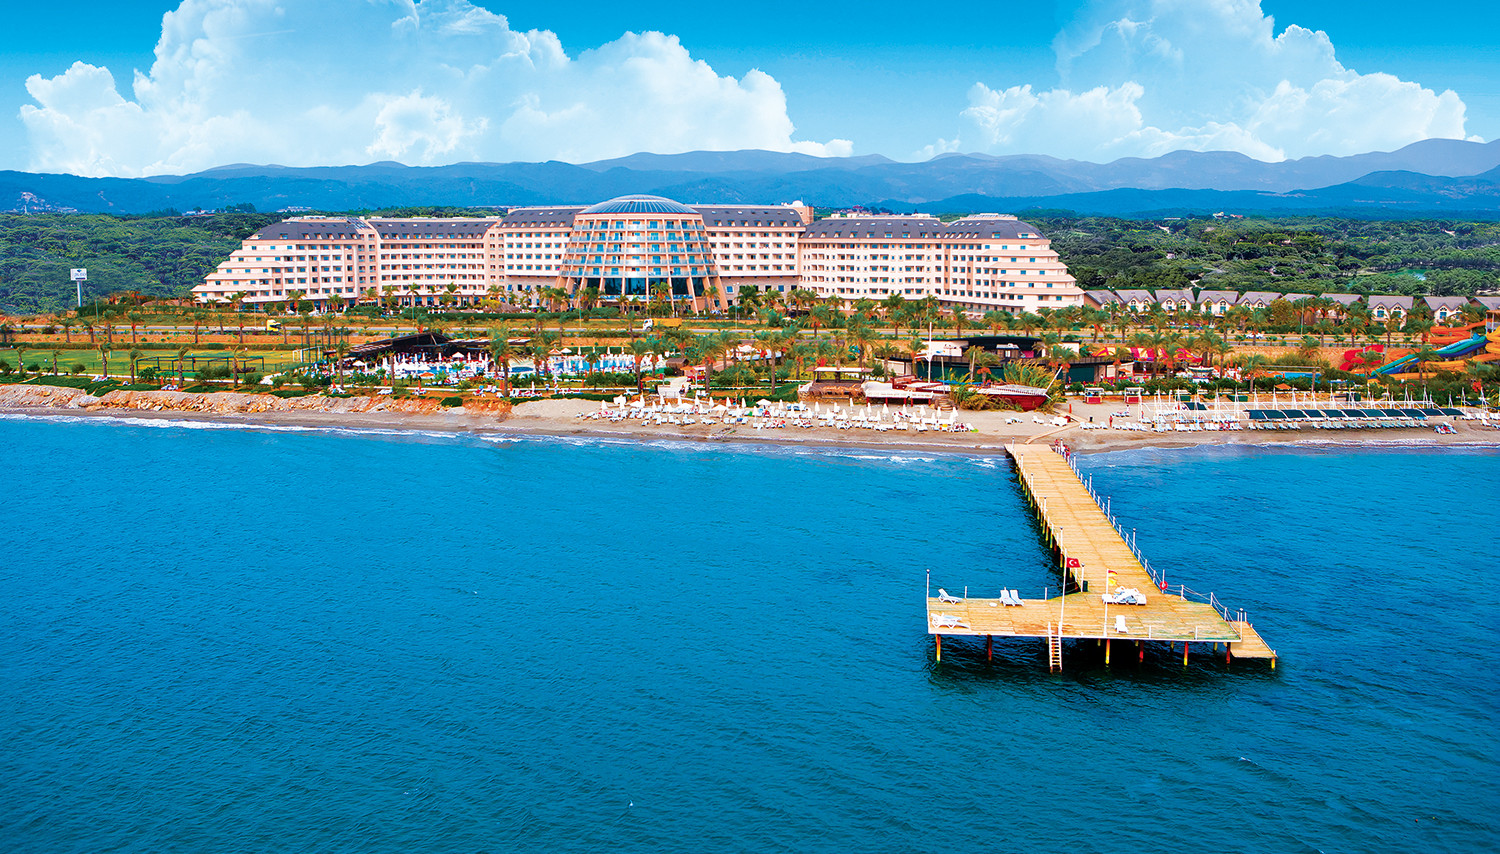 Long Beach Resort & SPA (Antālija, Turcija)